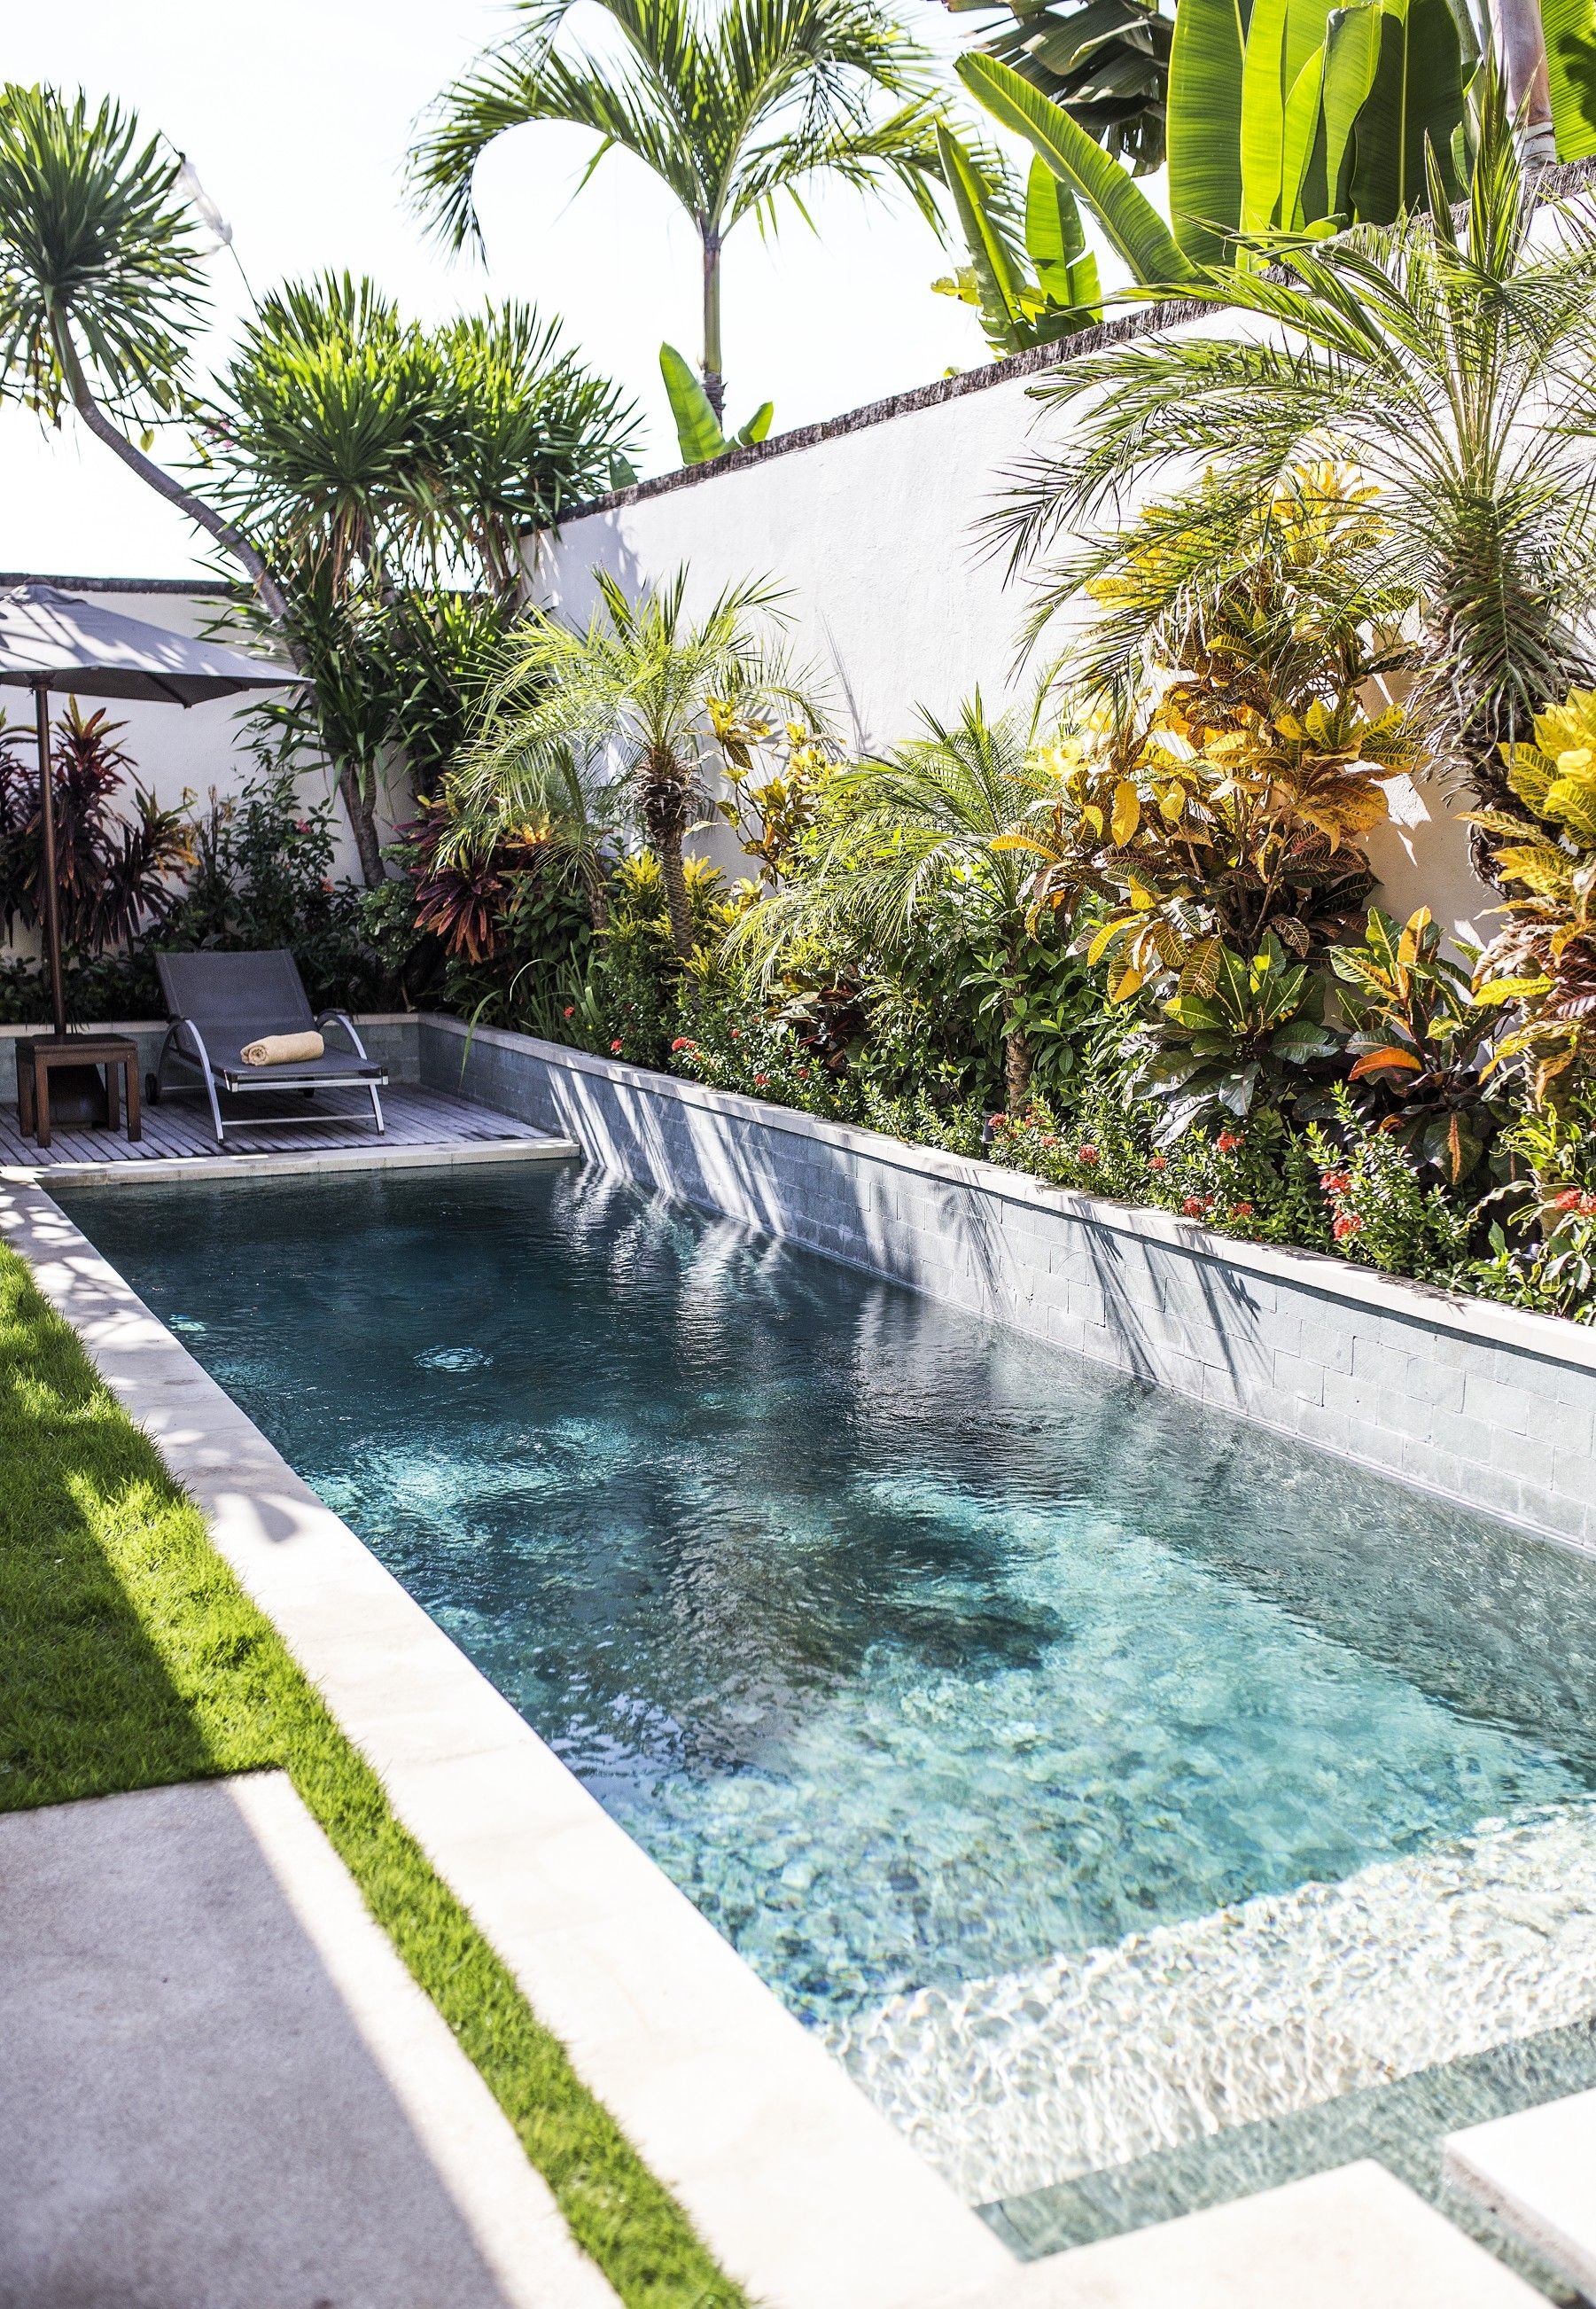 Bali Luxury Villa Rental Www Casalio Com 9 Bedroom Villa Bali Indonesia Private Pools Swimming Pool Landscaping Small Backyard Pools Swimming Pools Backyard